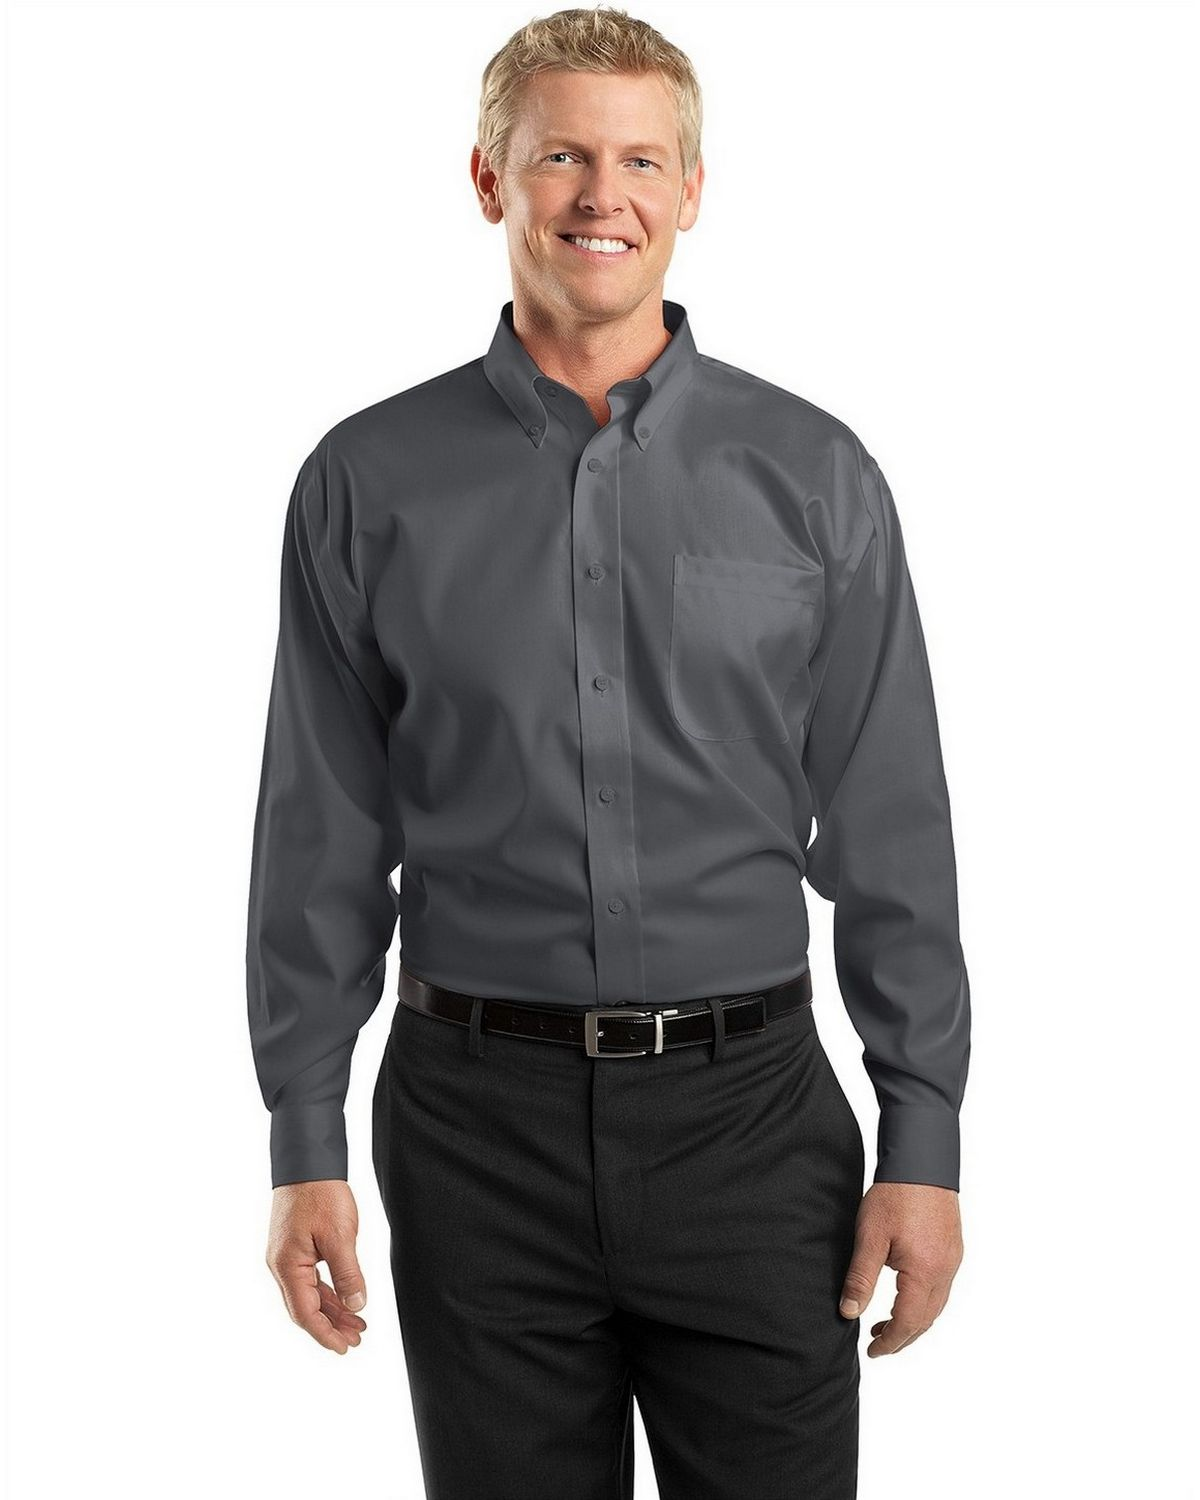 Port Authority Easy Care Men Dress Shirts Long Sleeve Regular Extended Tall Sizes